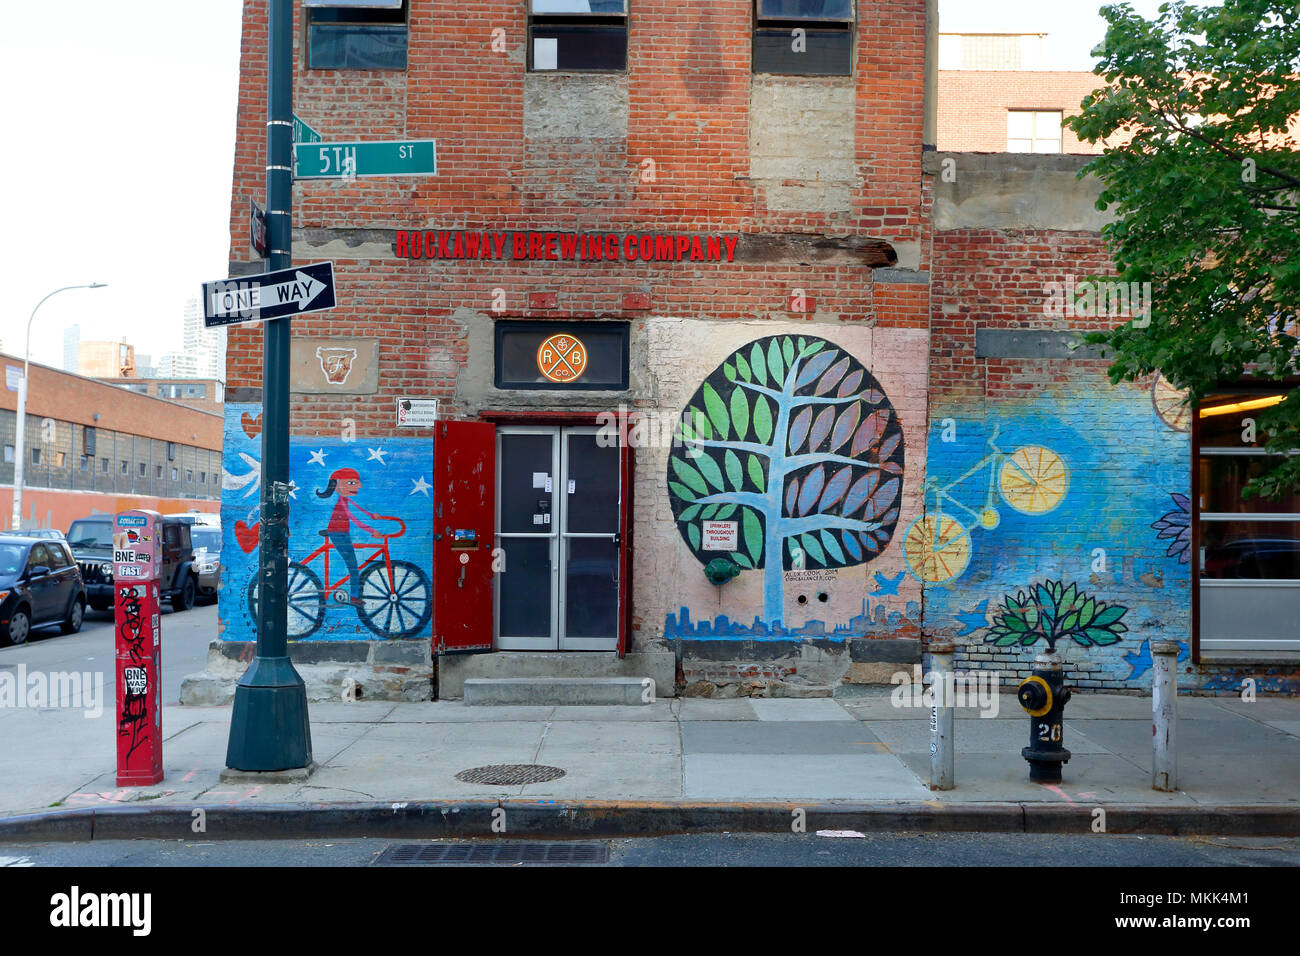 Rockaway Brewing Company LIC Tap Room, 46-01 5th St, Long Island City, NY. - Stock Image